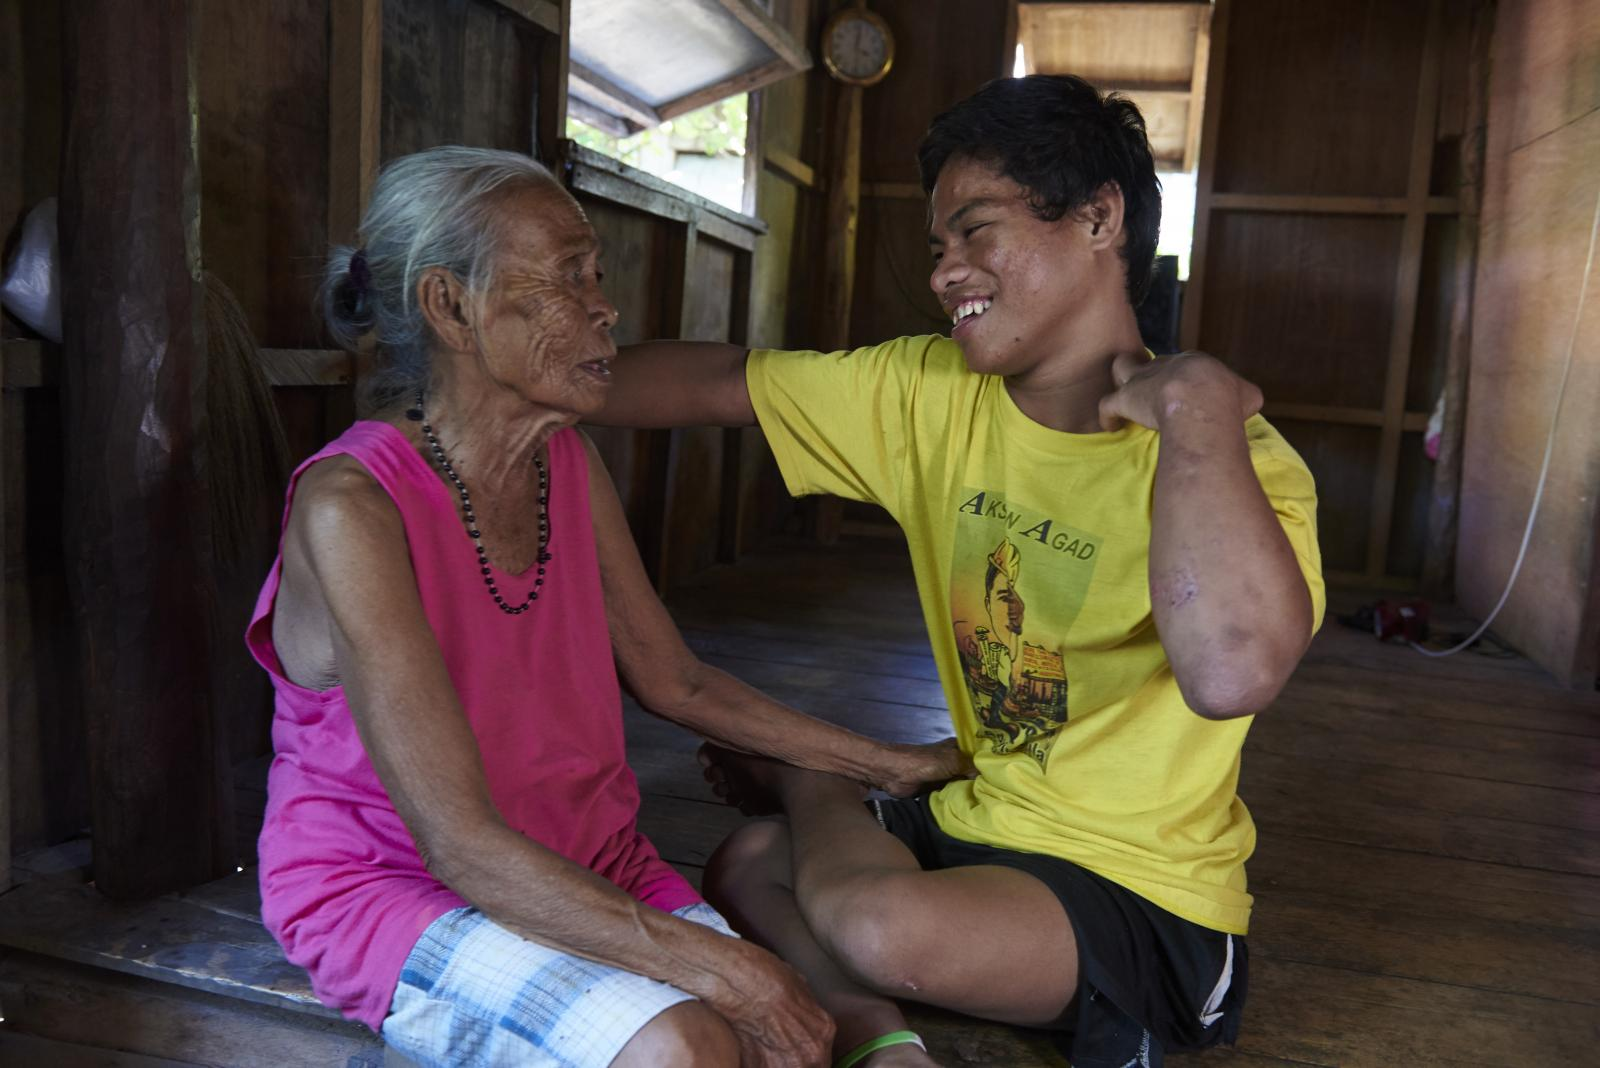 Ray, a person with disability, and his aunt